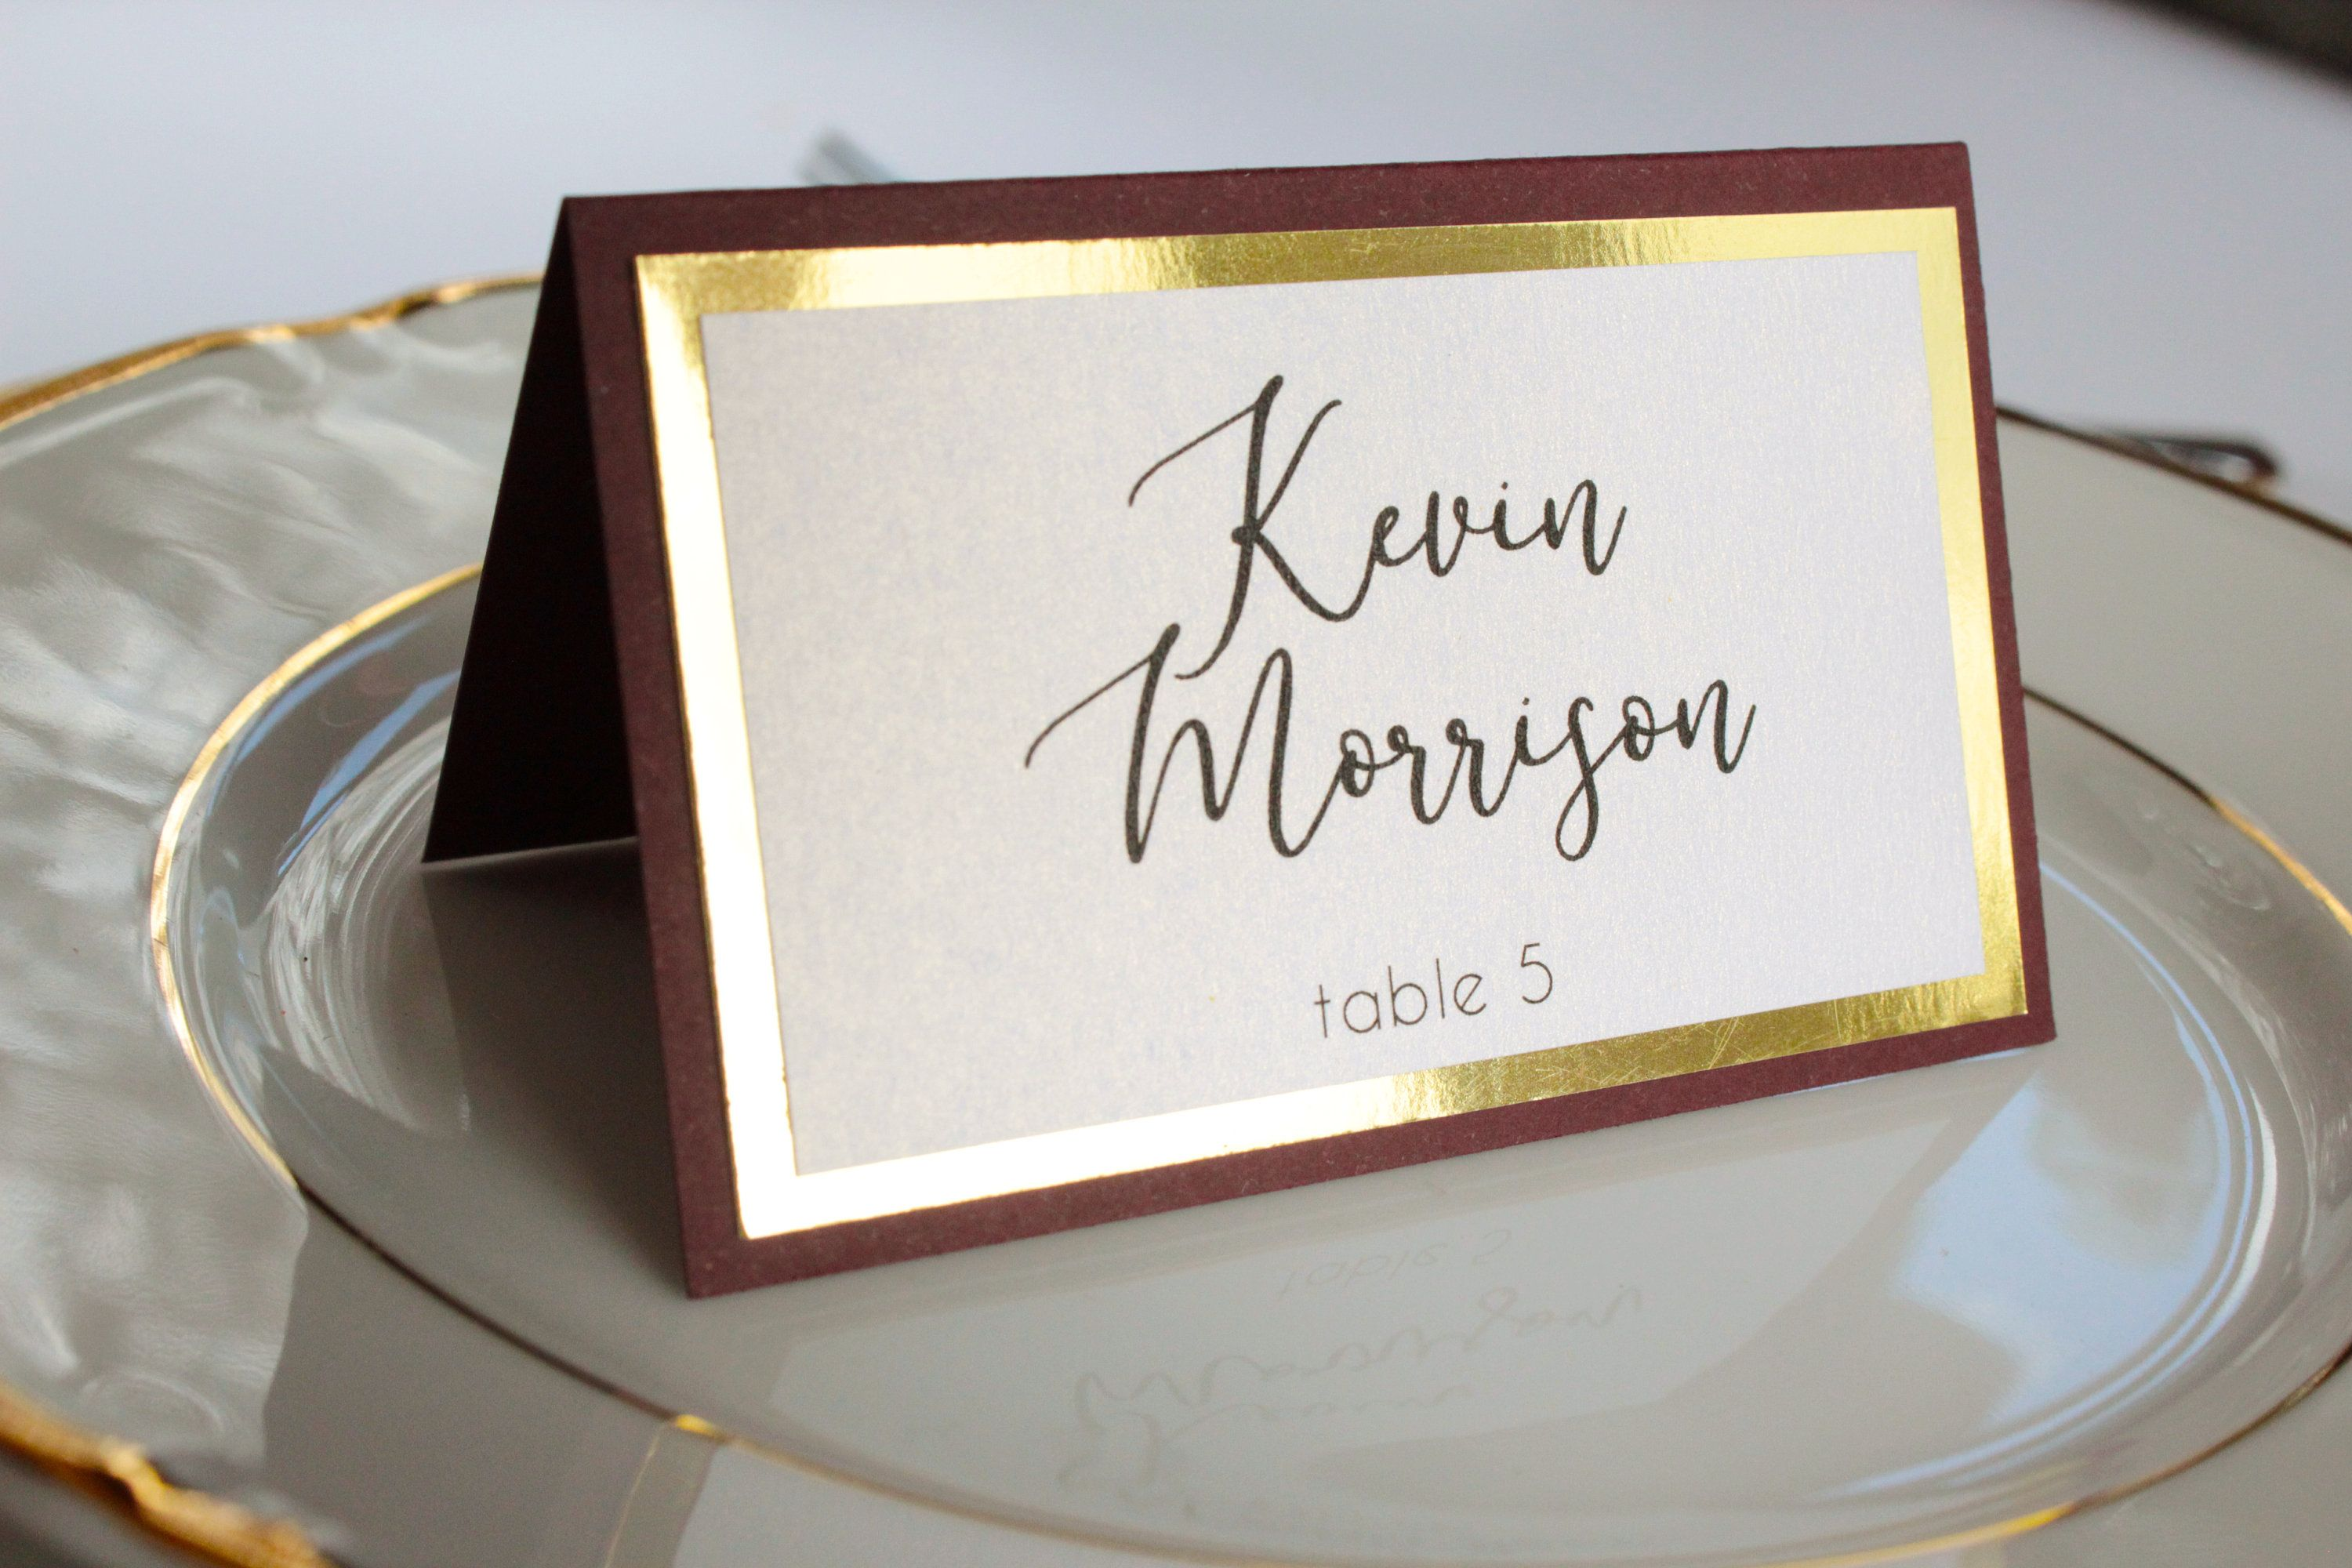 Sample Burgundy And Gold Place Card Burgundy Place Card Gold Foil Place Card Marsala Place Card We Card Table Wedding Gold Place Cards Wedding Place Cards